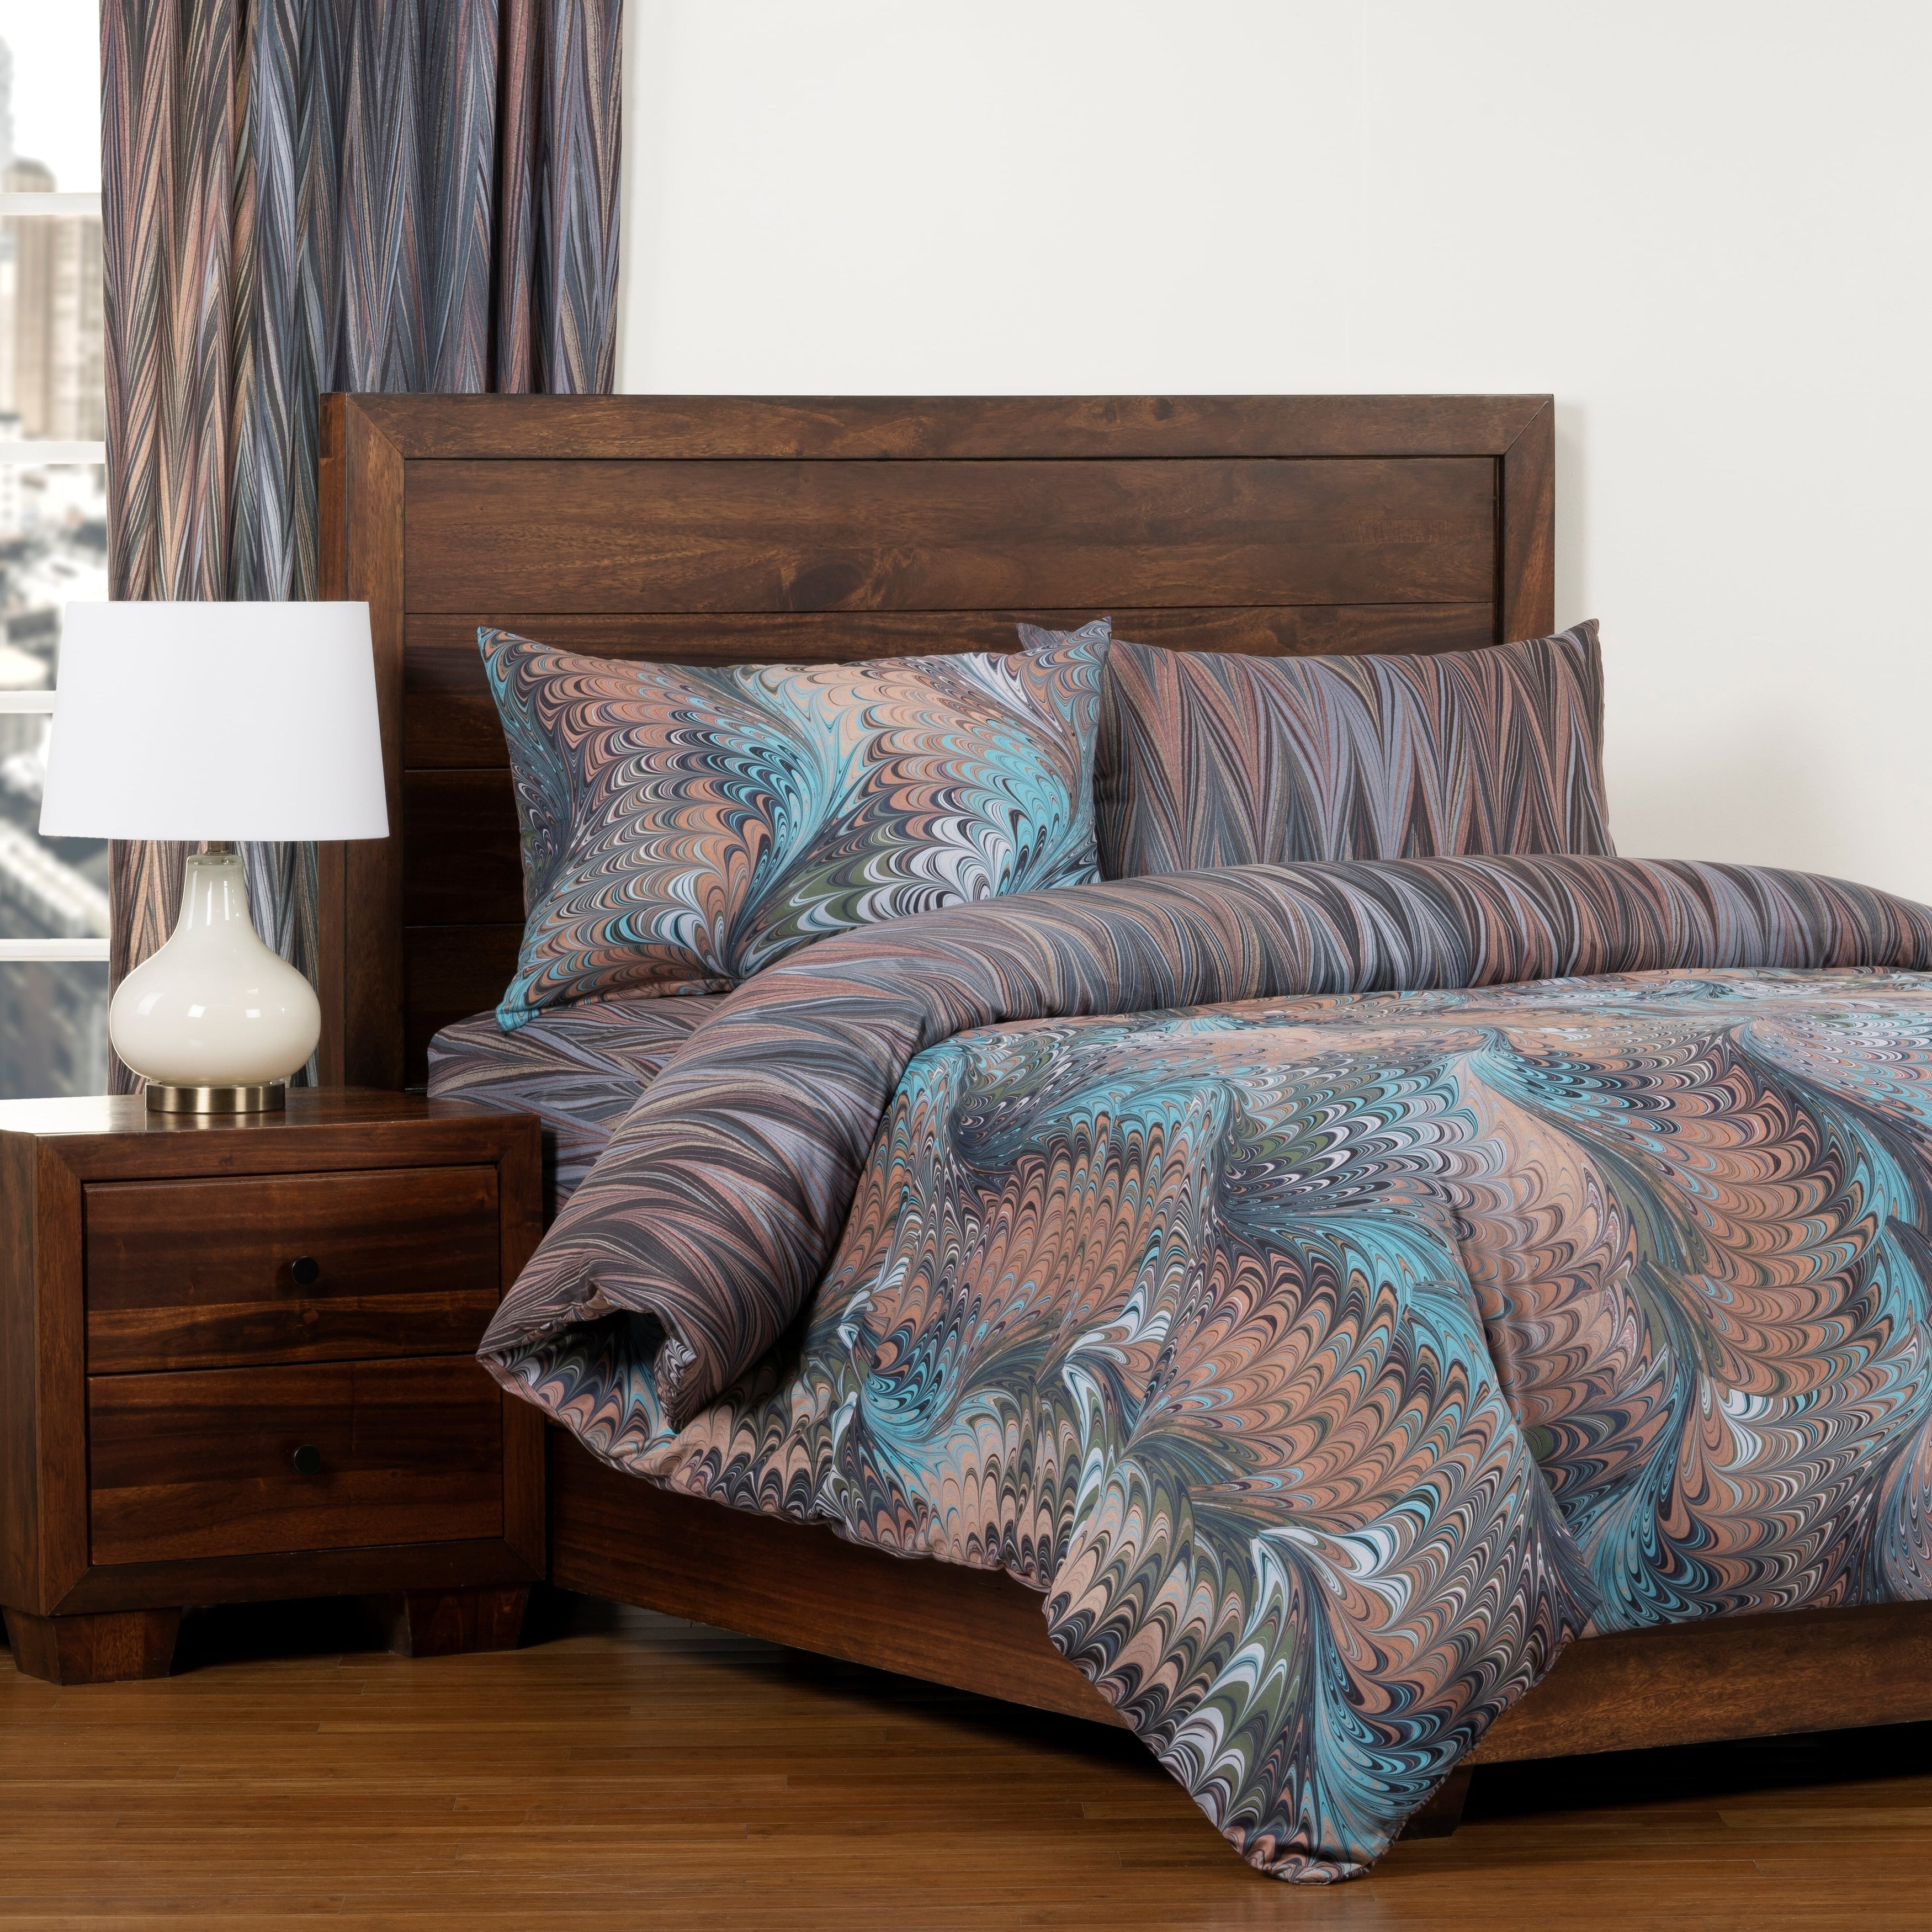 The Art Of Marbling Alluvium Aftershock Reversible Luxury Duvet Cover And Insert Set Overstock 28866605